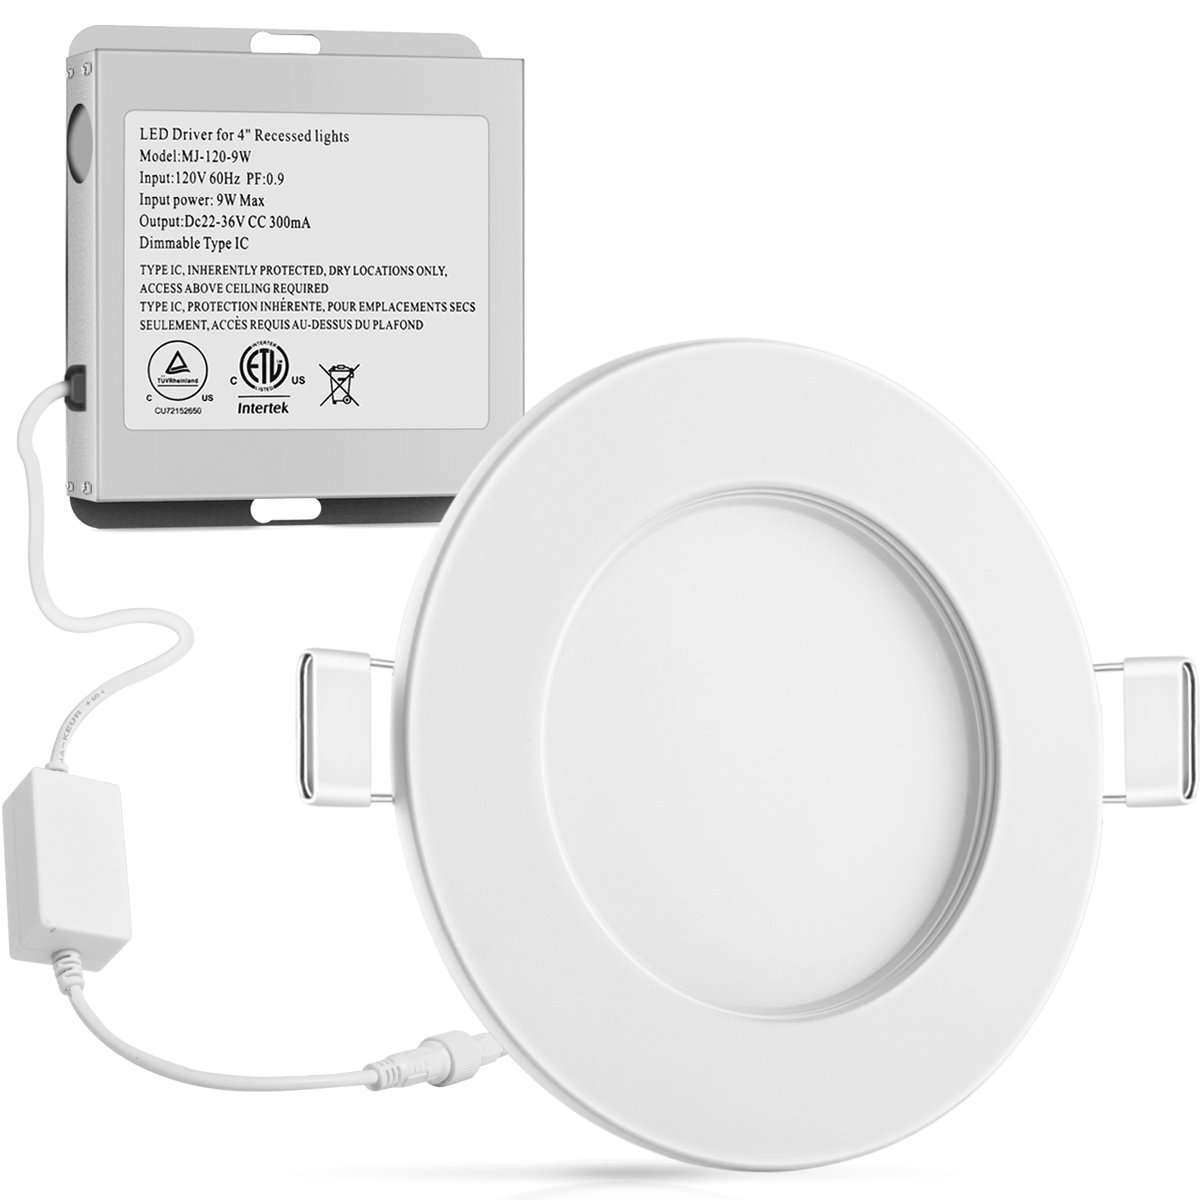 "LED Recessed Downlight, CHOETECH 9W Ultra-Thin 4"" Dimmable Smart LED Panel Wireless Recessed Ceiling Downlight 6000K with Junction Box, Working with Alexa, Android and iOS Phone APP Control"